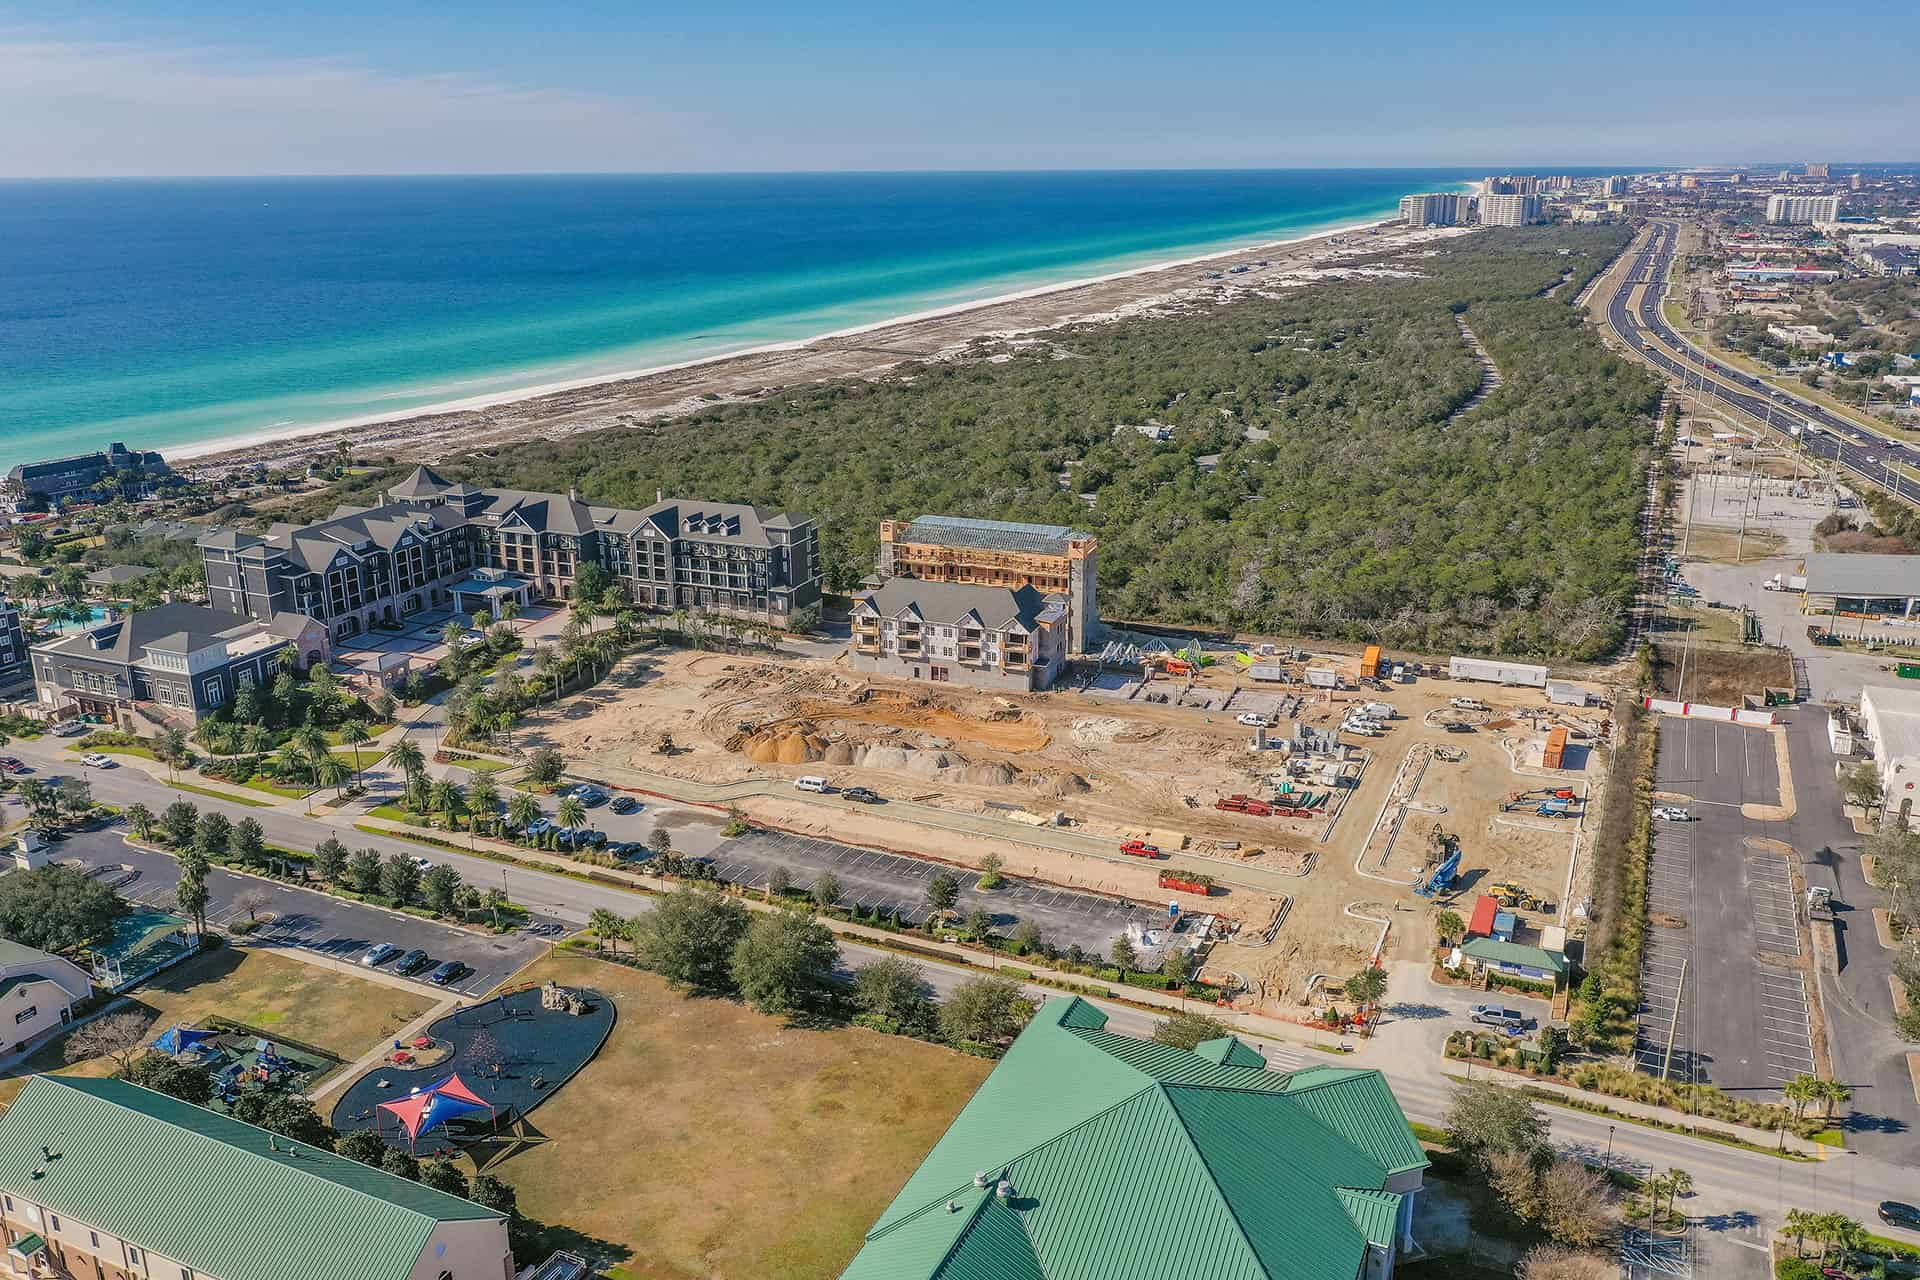 Parkside_at_Henderson_Beach_Resort_January_2021 drone photo looking southwest